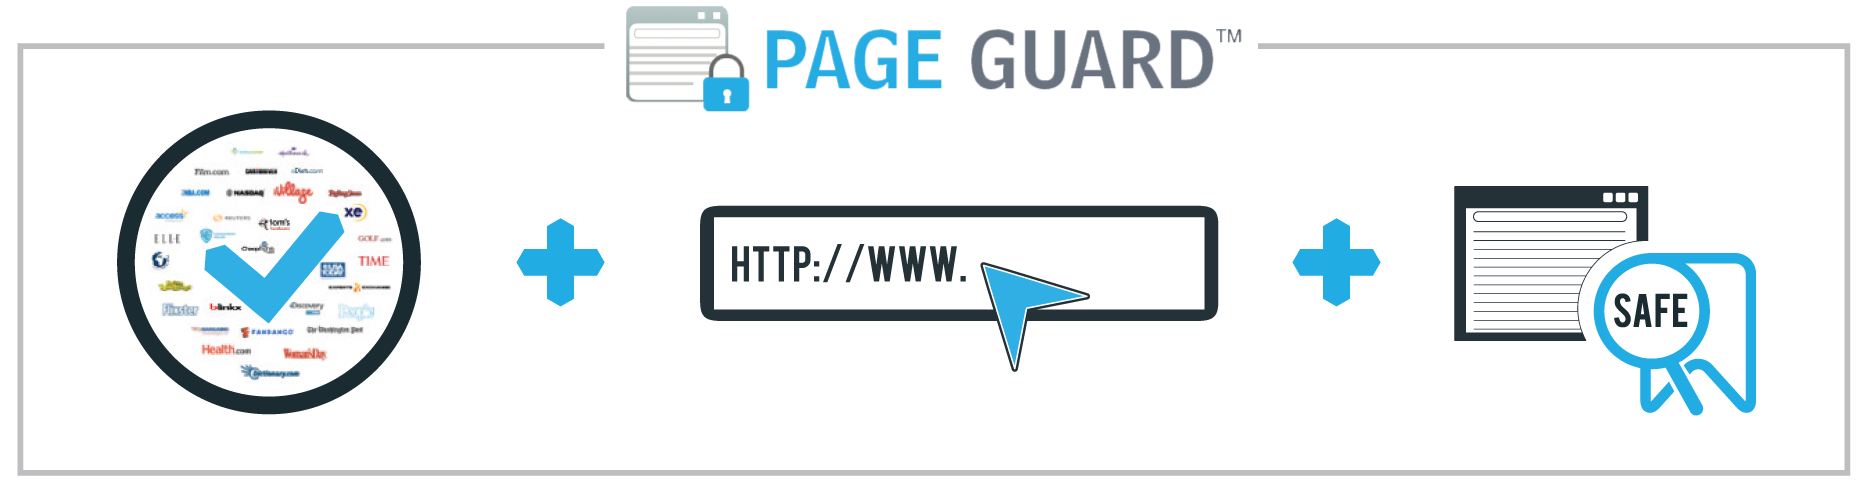 page_guard